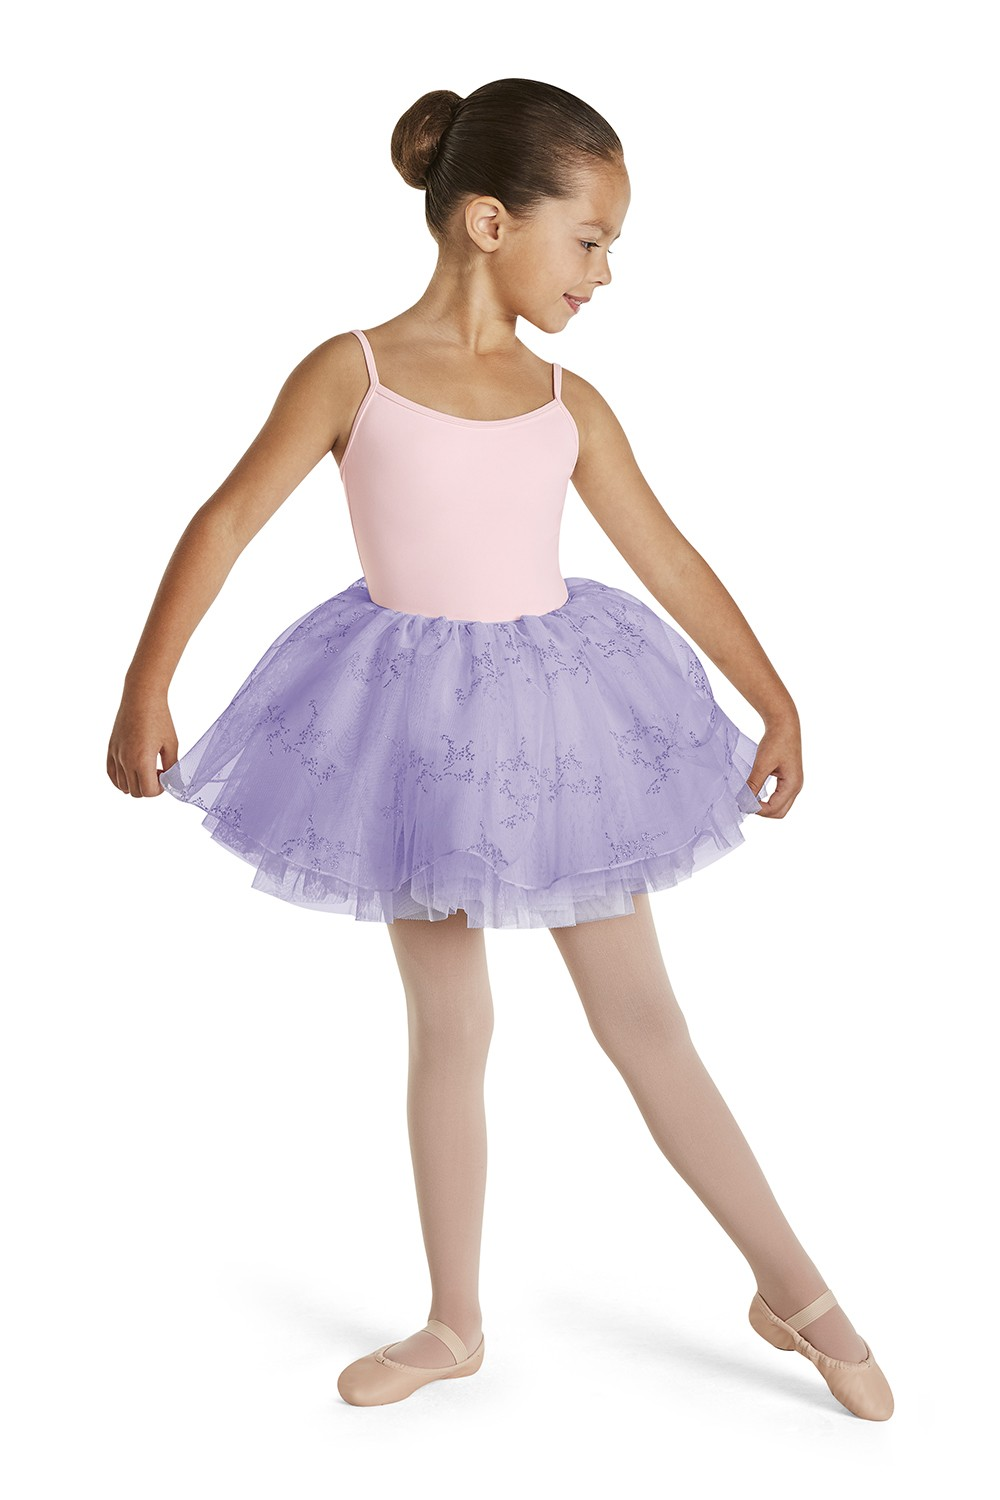 e20e8f22b BLOCH® Children s Dance   Ballet Skirts - BLOCH® US Store